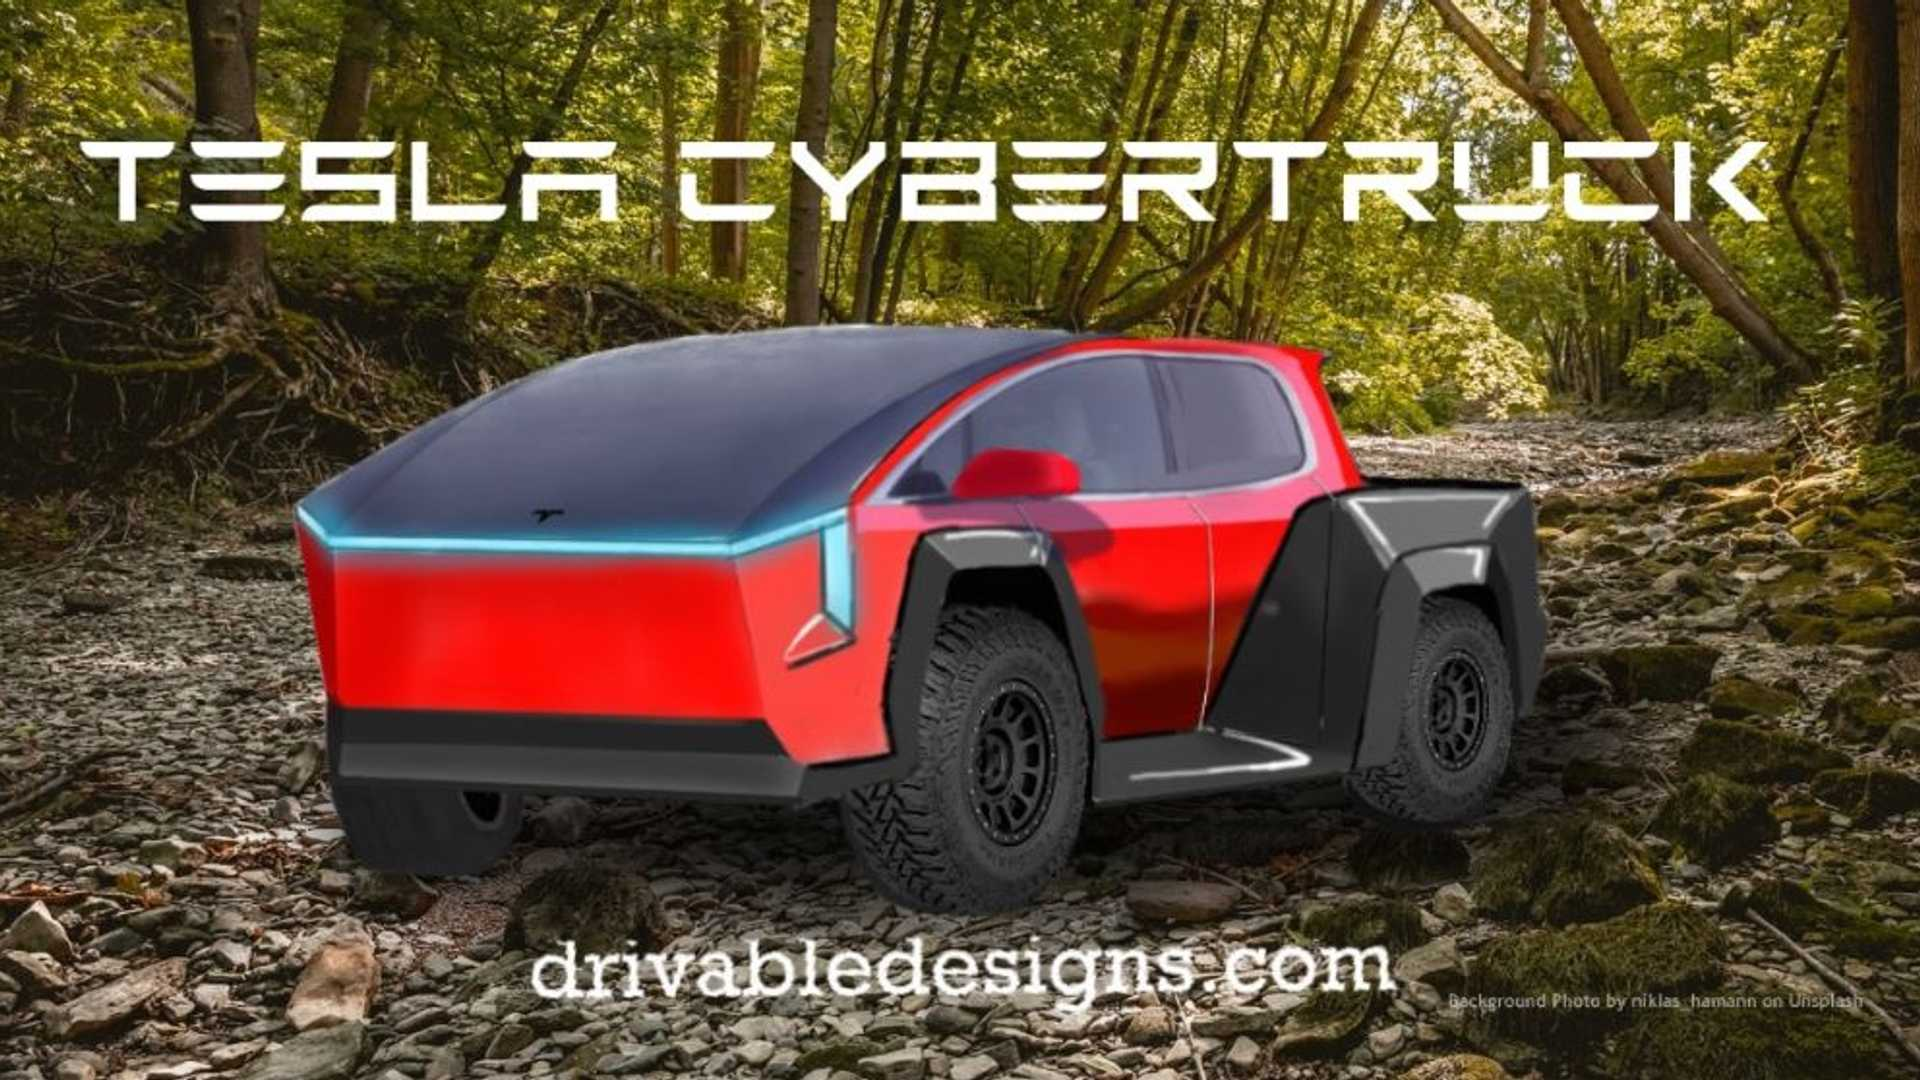 New Tesla Electric Pickup Truck Rendered In Rugged, Cyberpunk Fashion